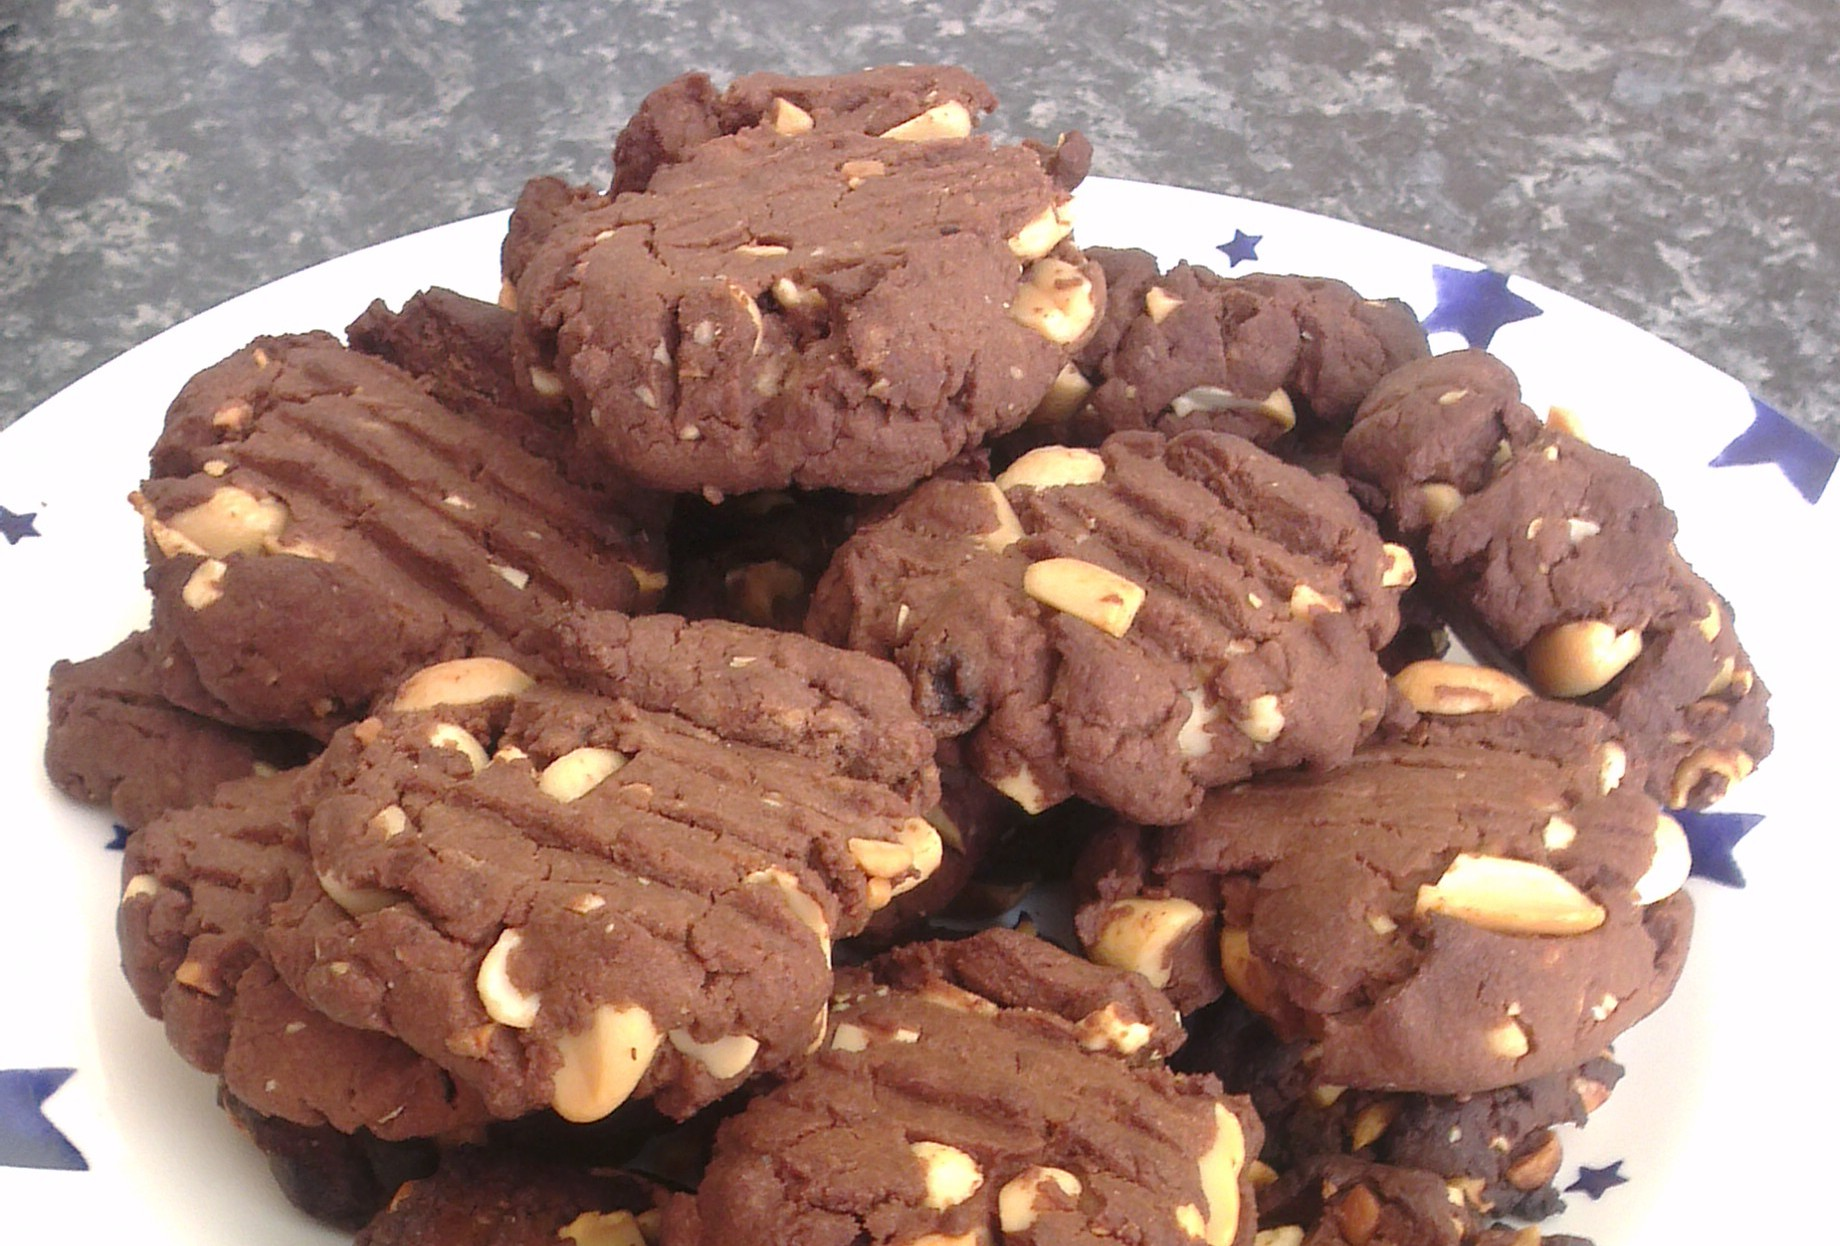 RECIPE: Chocolate and peanut butter cookies - Slummy single mummy